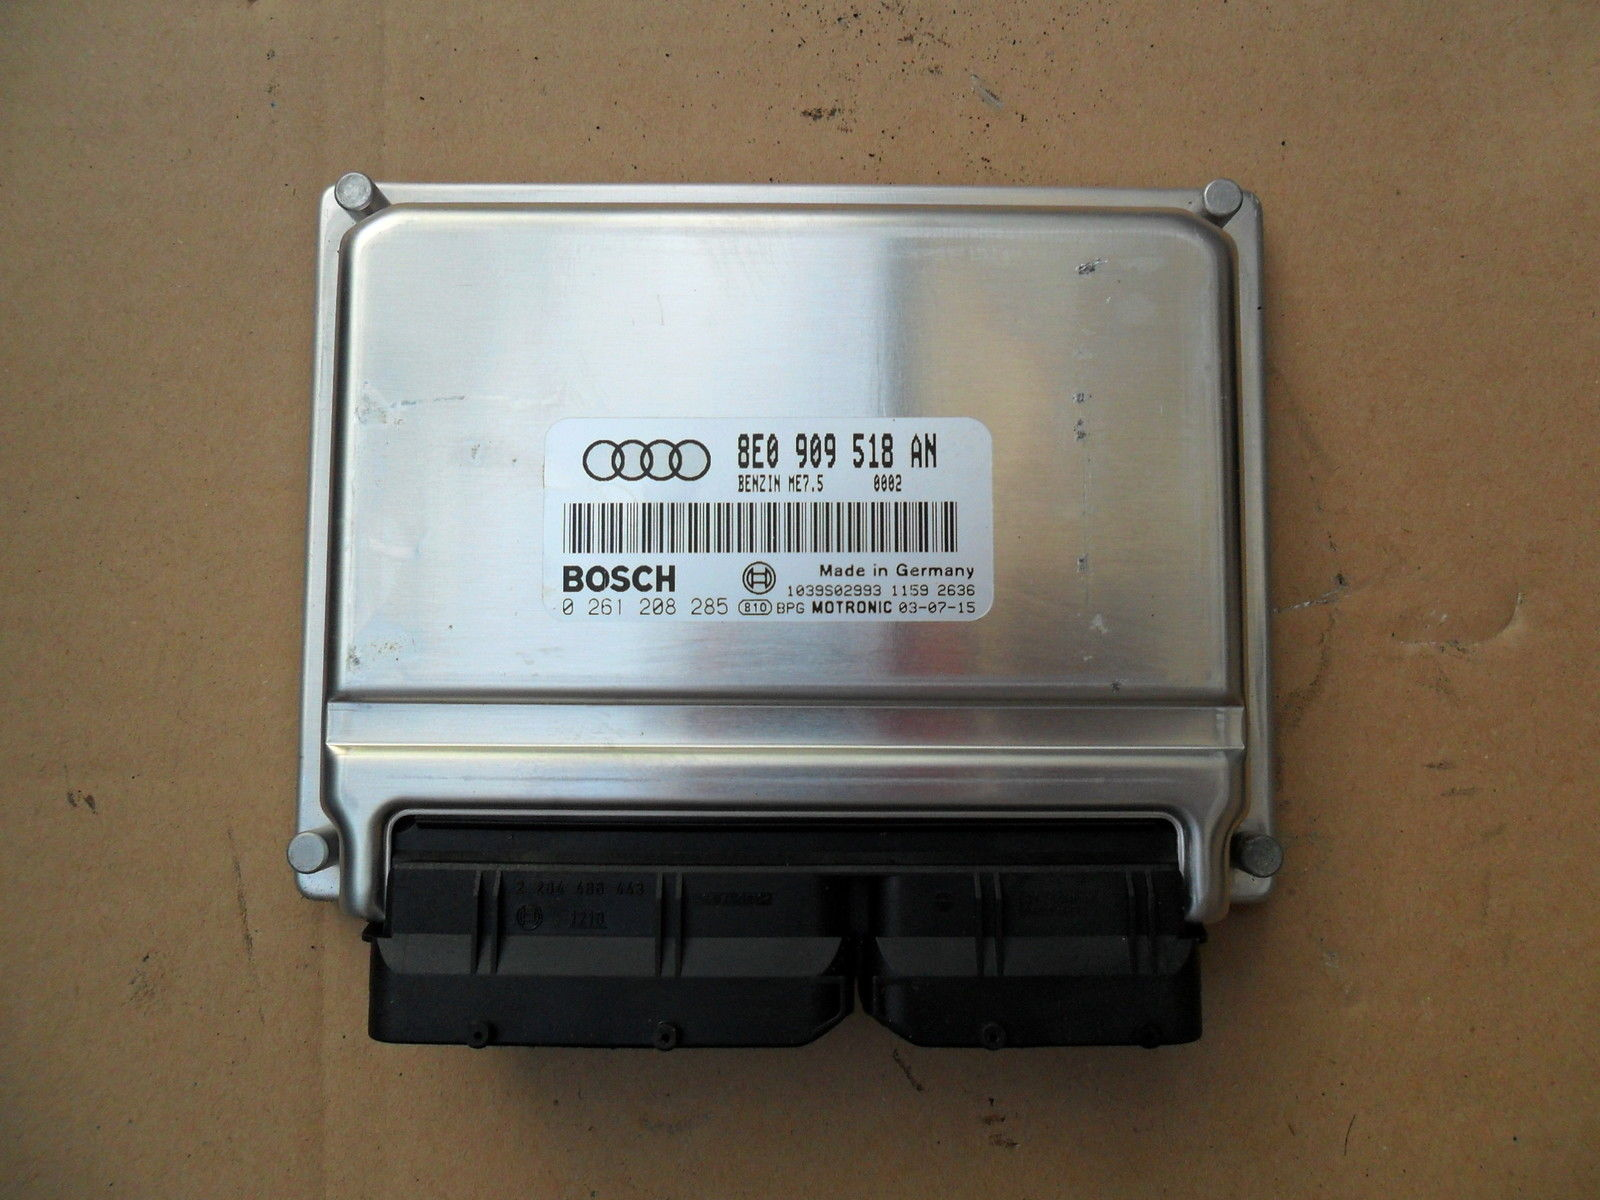 VAG Bosch ME7.5.x ECU repair instruction